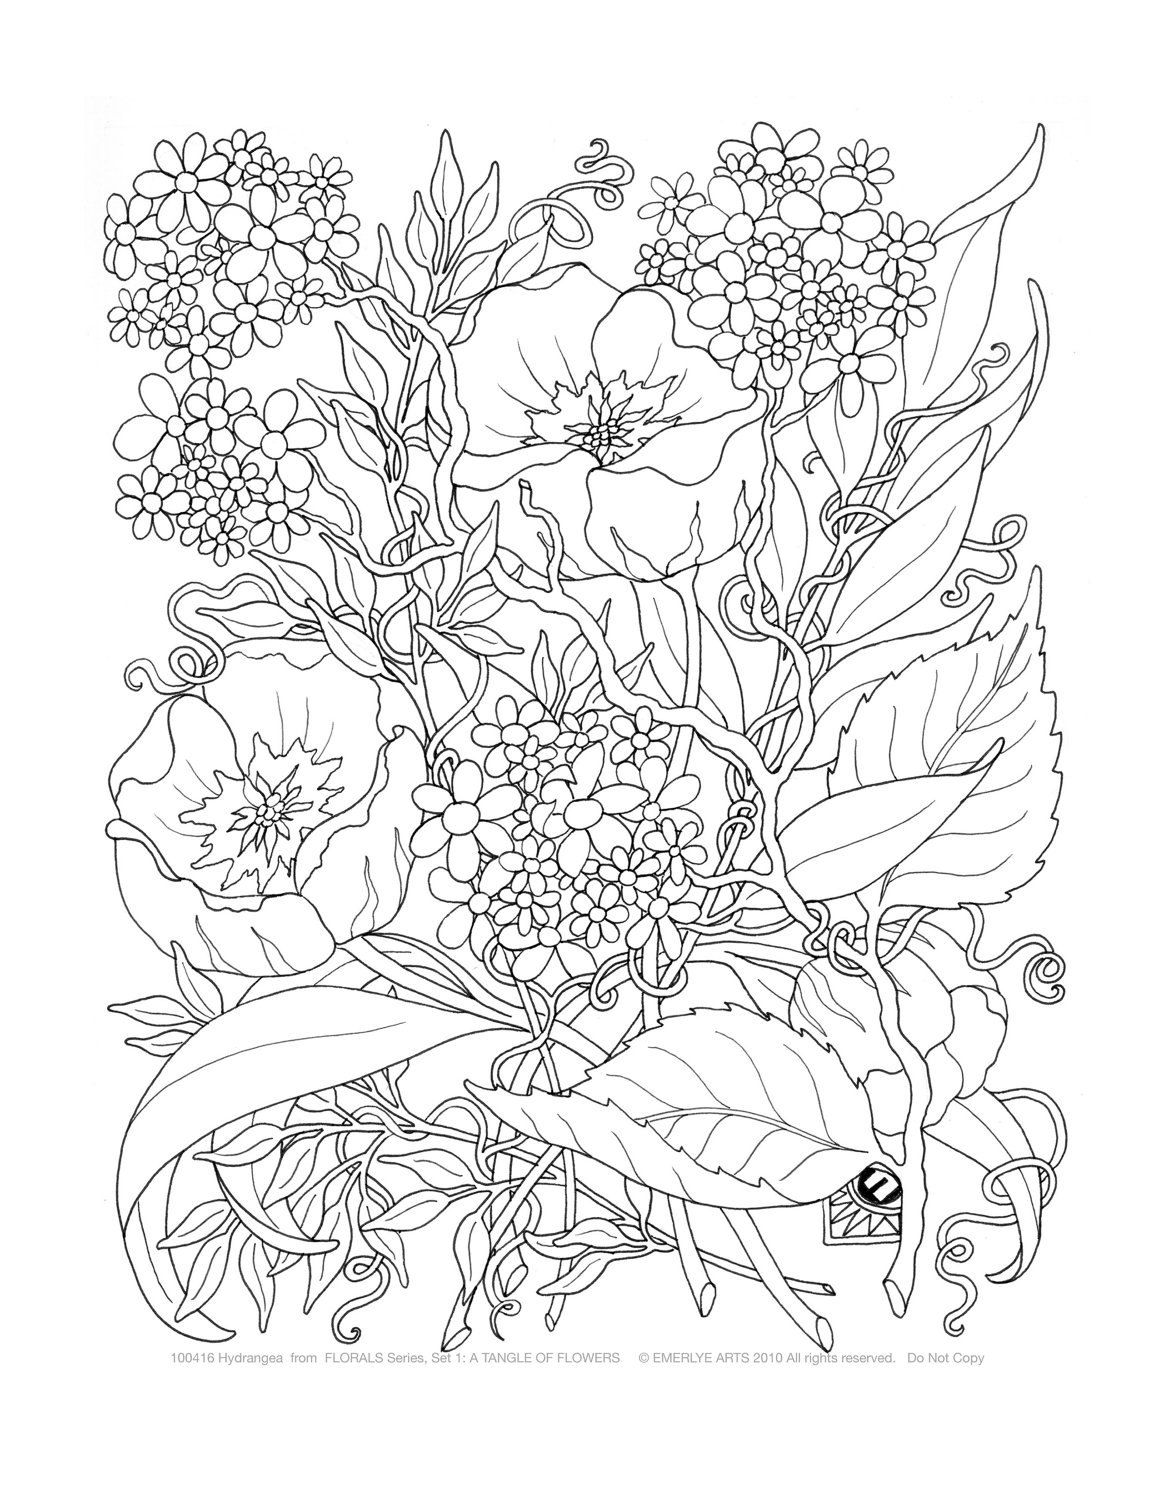 coloring pages for seniors funny stoner coloring page for adults illustration stoner coloring for pages seniors